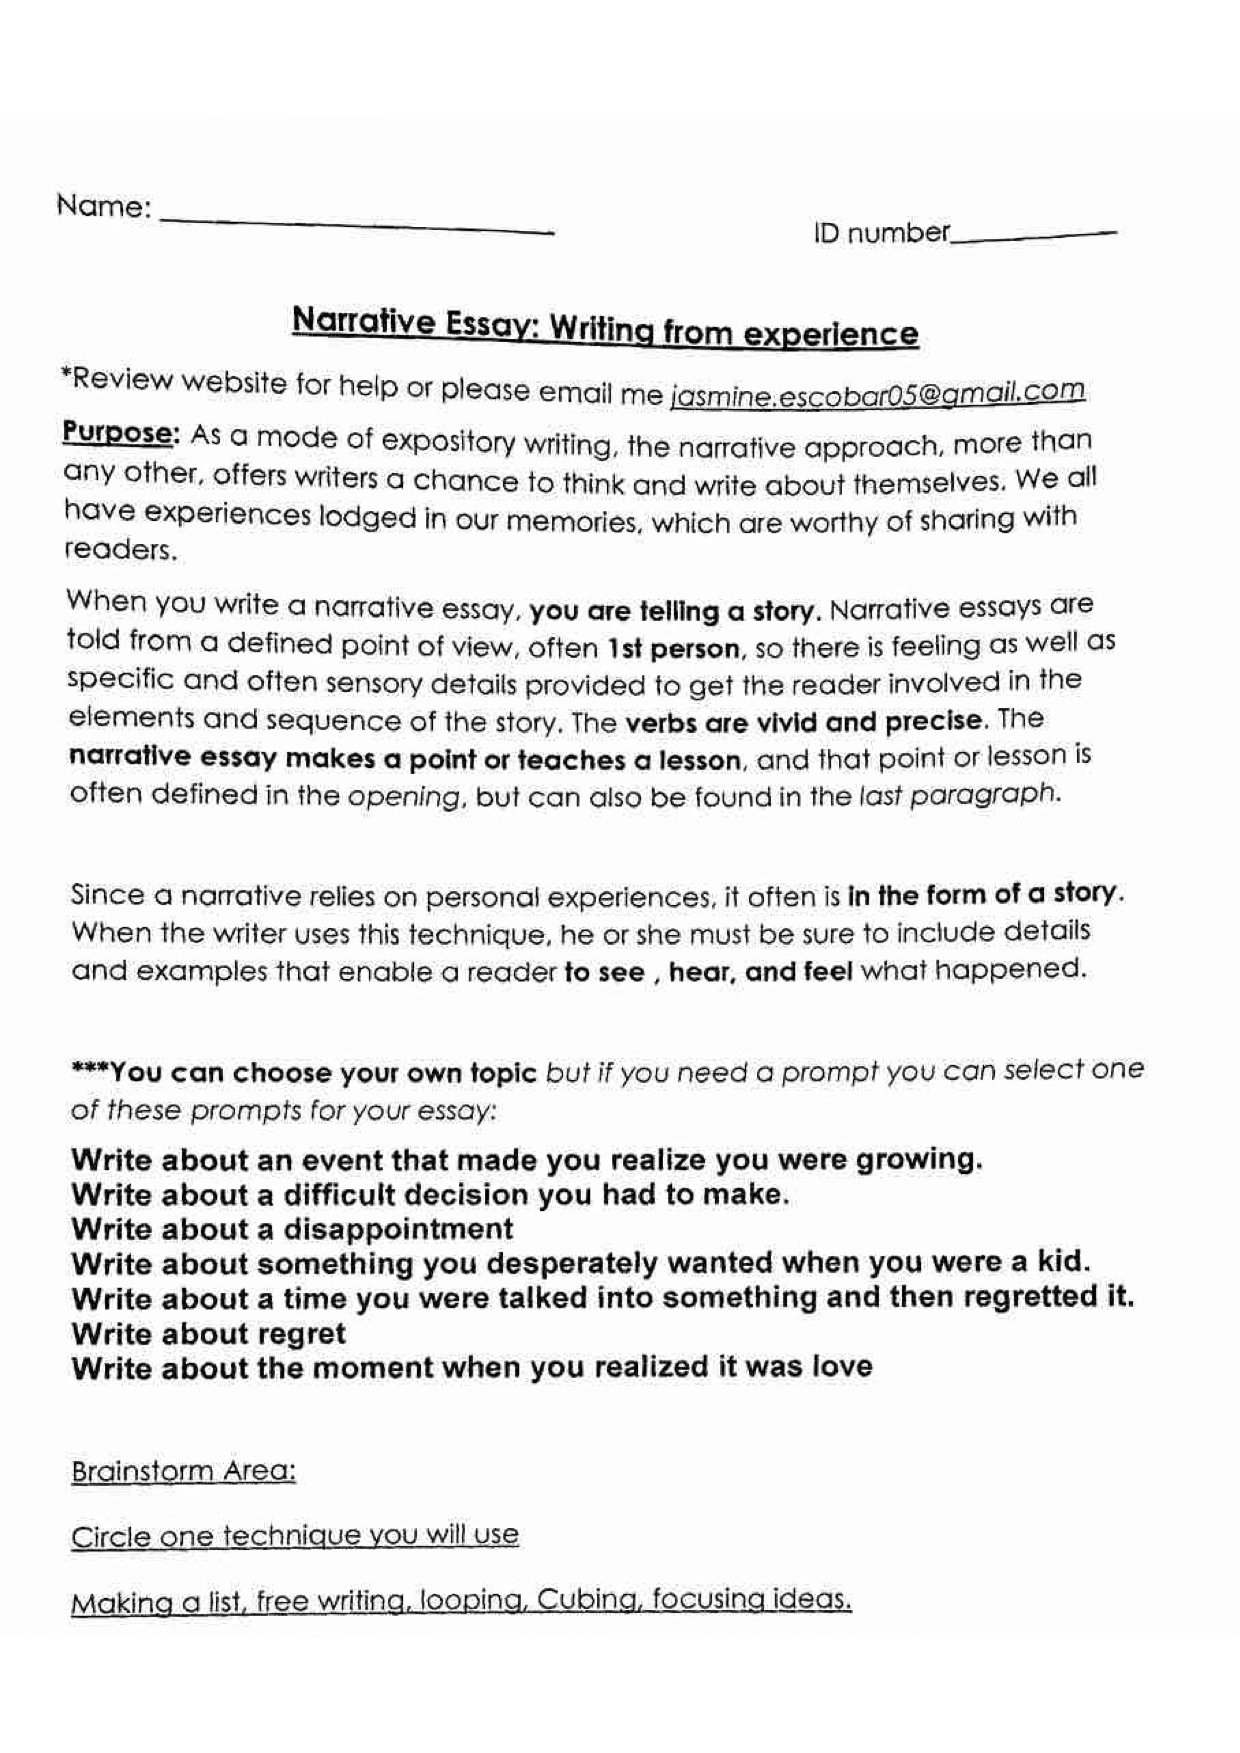 essay narrative story rubric and explanation knu english